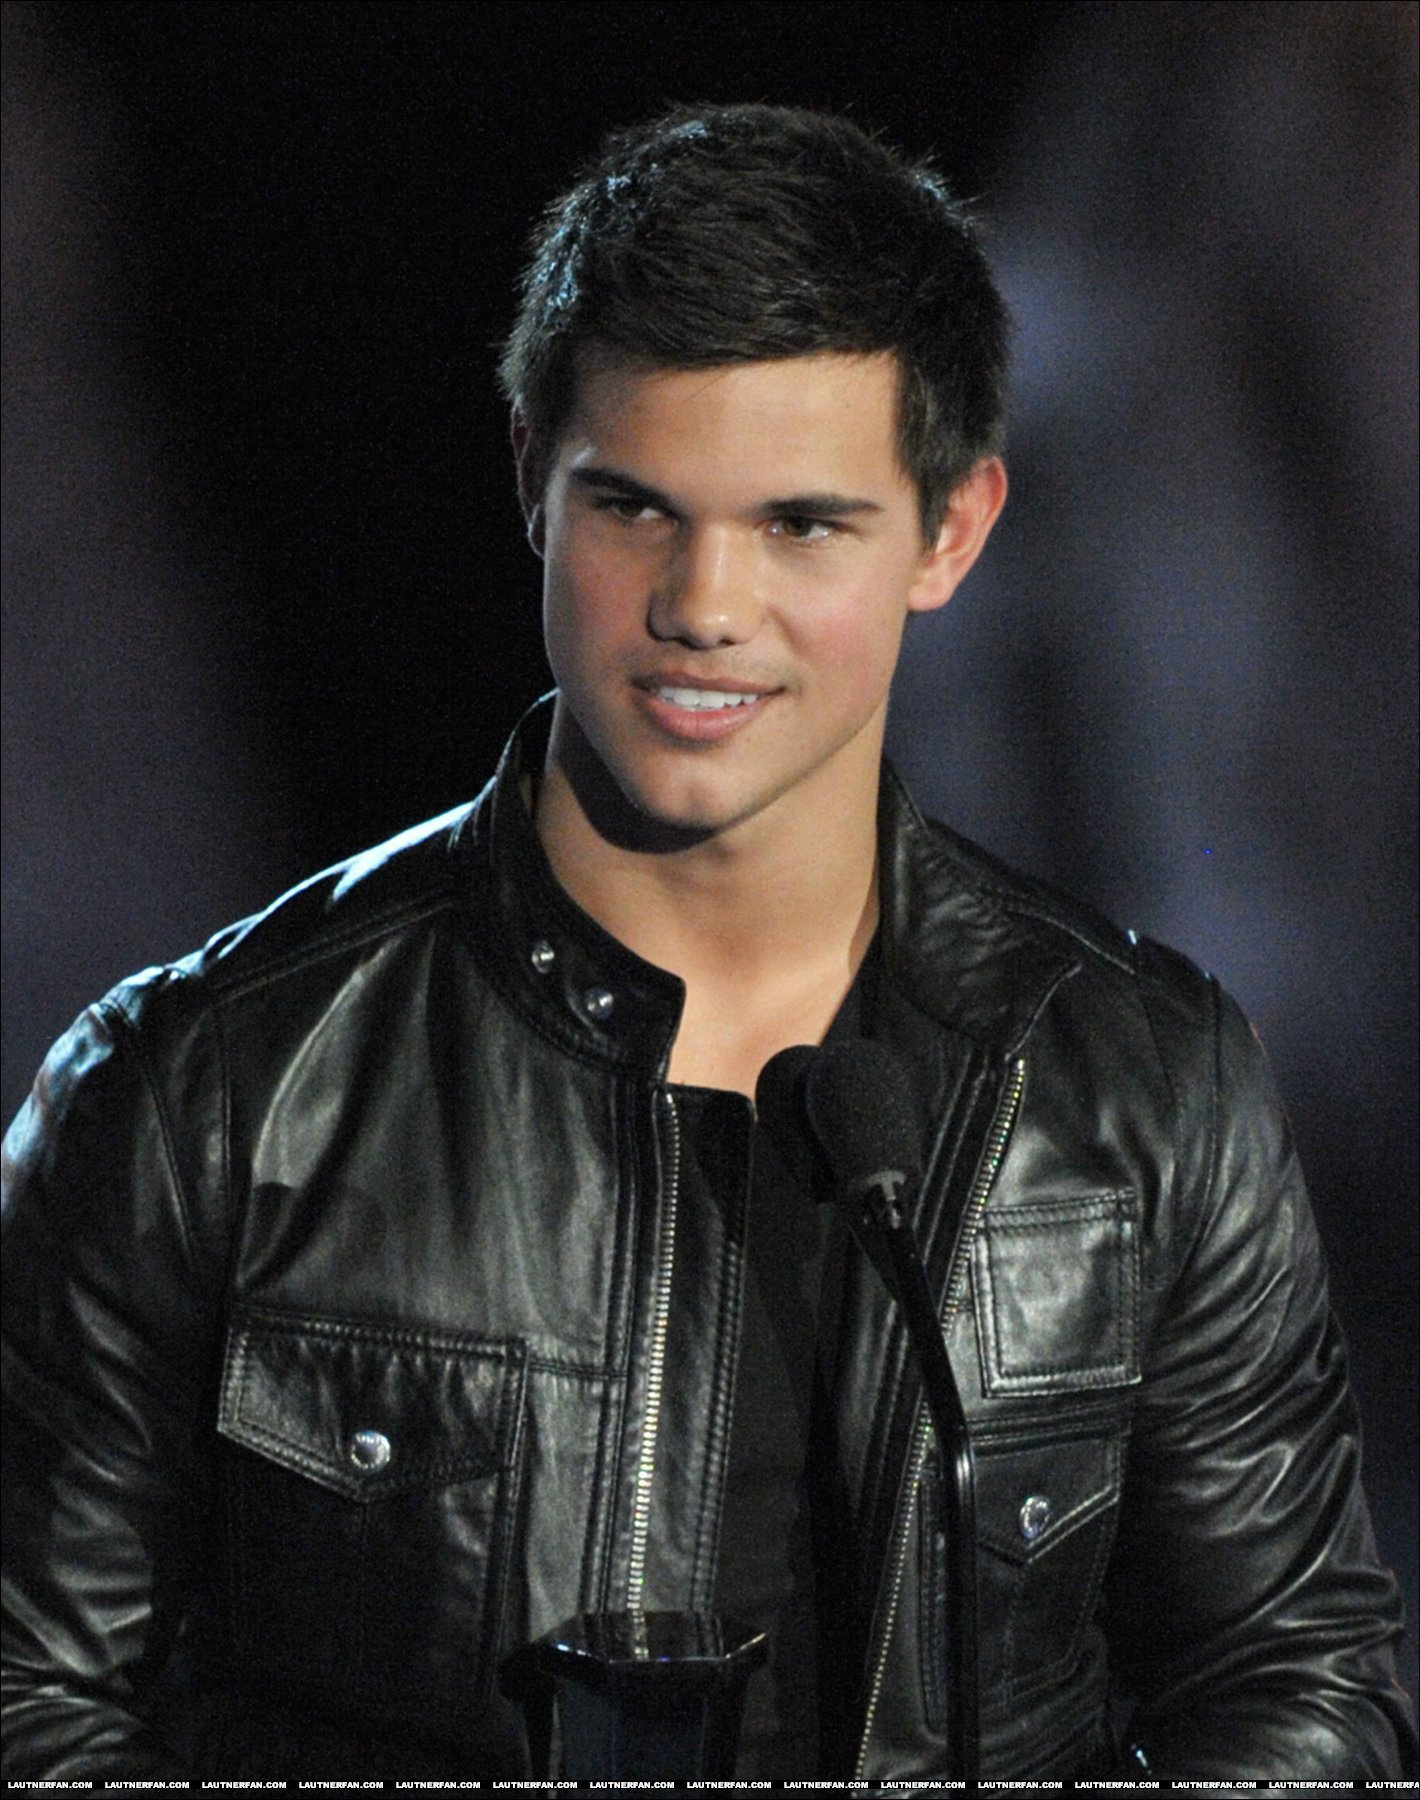 http://images2.fanpop.com/image/photos/8800000/HQ-taylor-Lautner-twilight-crepusculo-8845462-1420-1800.jpg